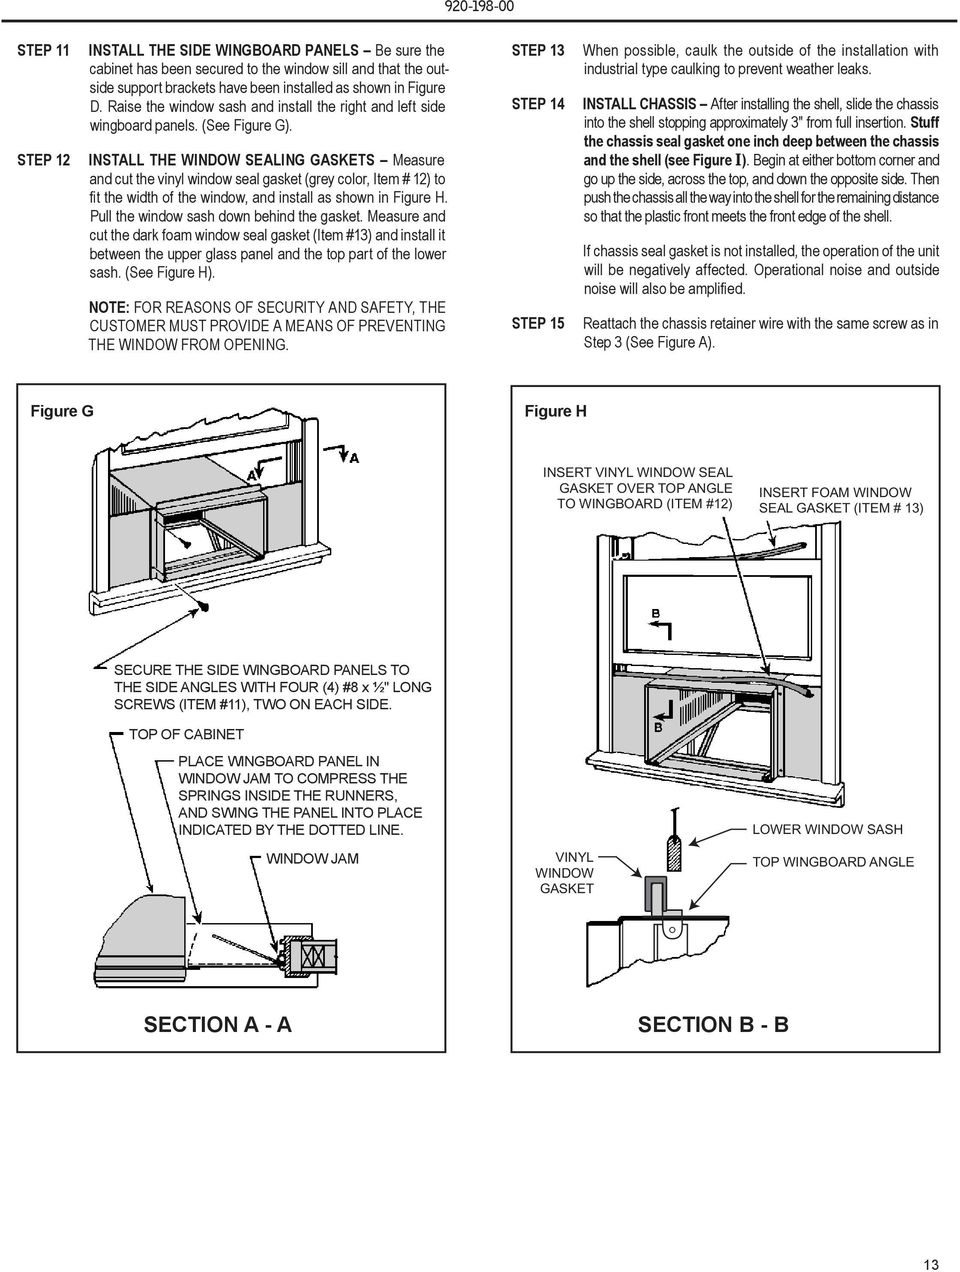 INSTALL THE WINDOW SEALING GASKETS Measure and cut the vinyl window seal gasket (grey color, Item # 12) to fit the width of the window, and install as shown in Figure H.